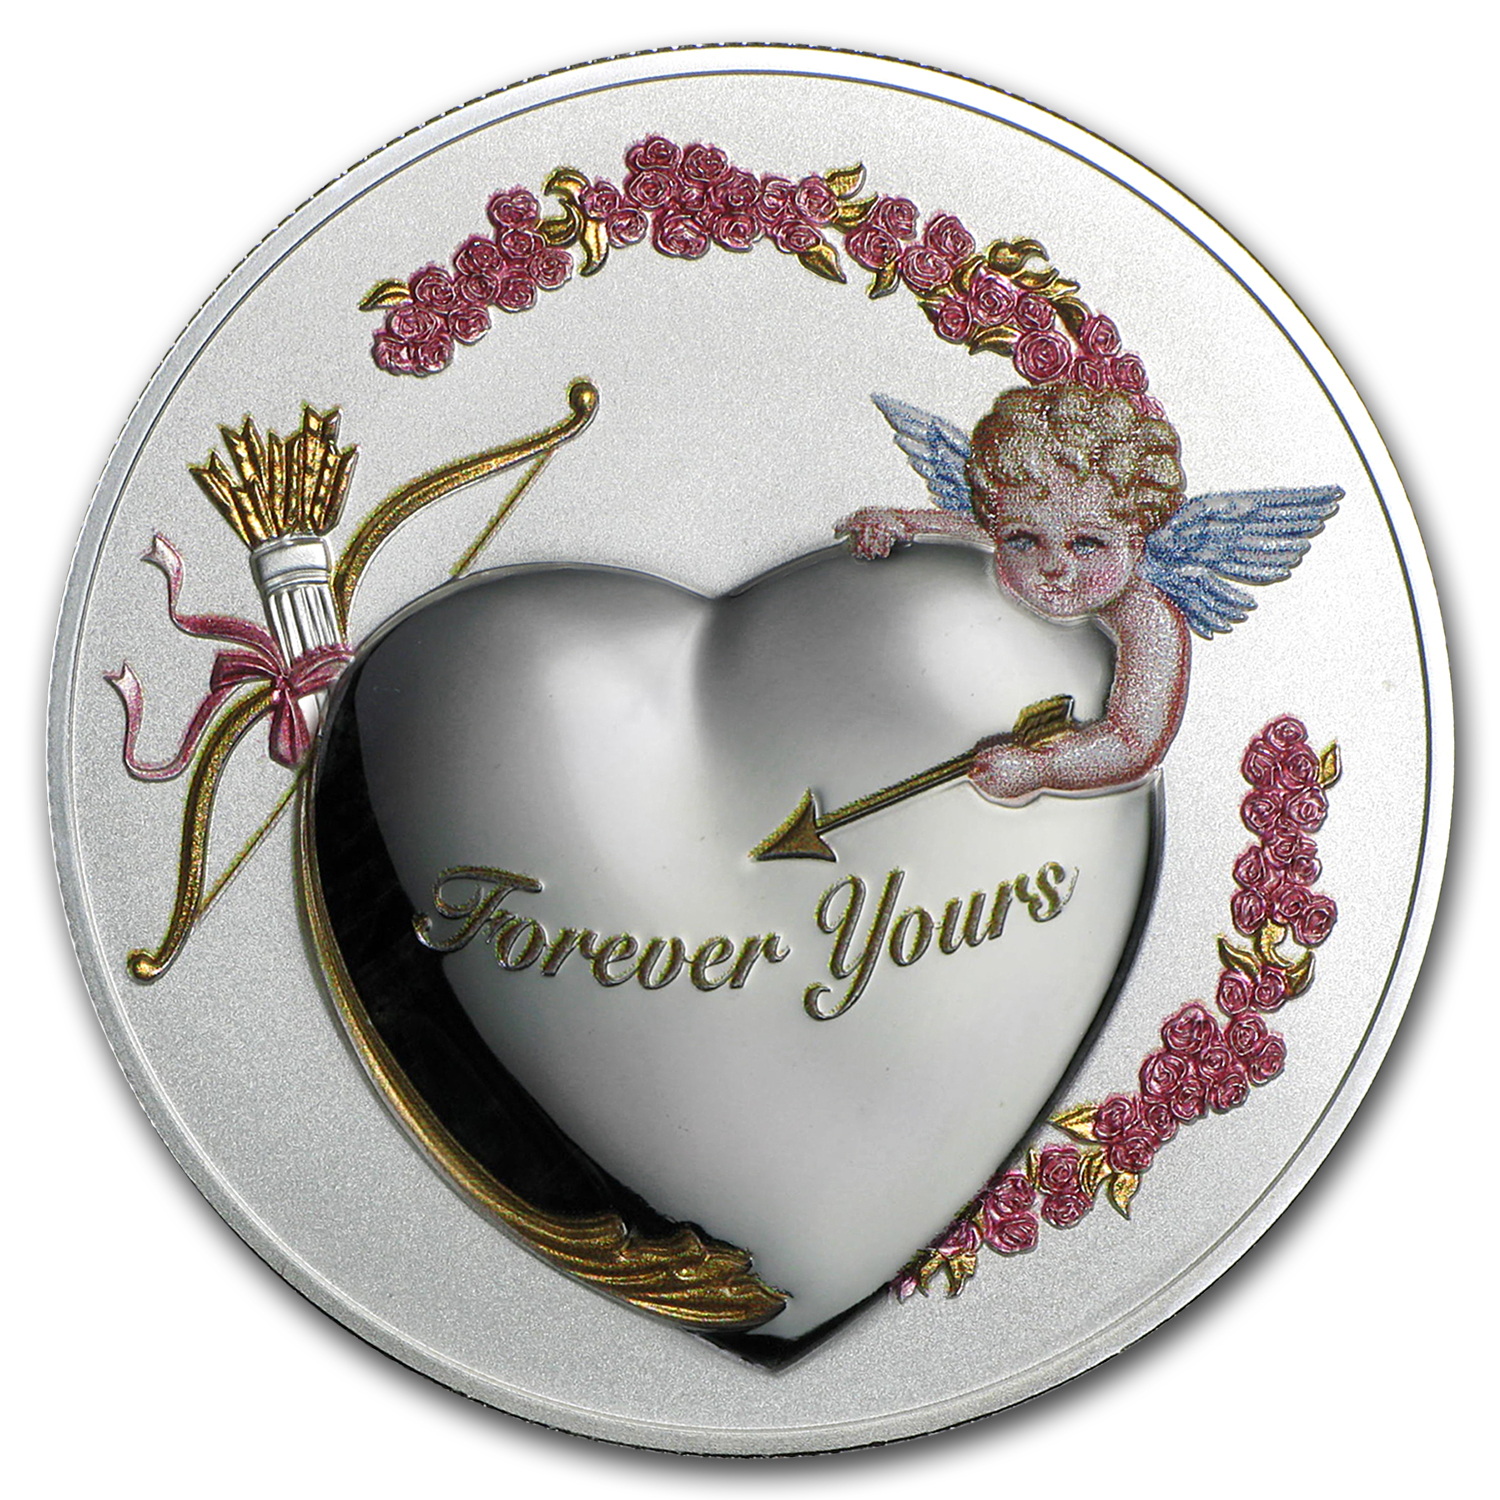 "2016 Niue 1 oz Silver ""Forever Yours"" Coin PL (PAMP, No COA)"